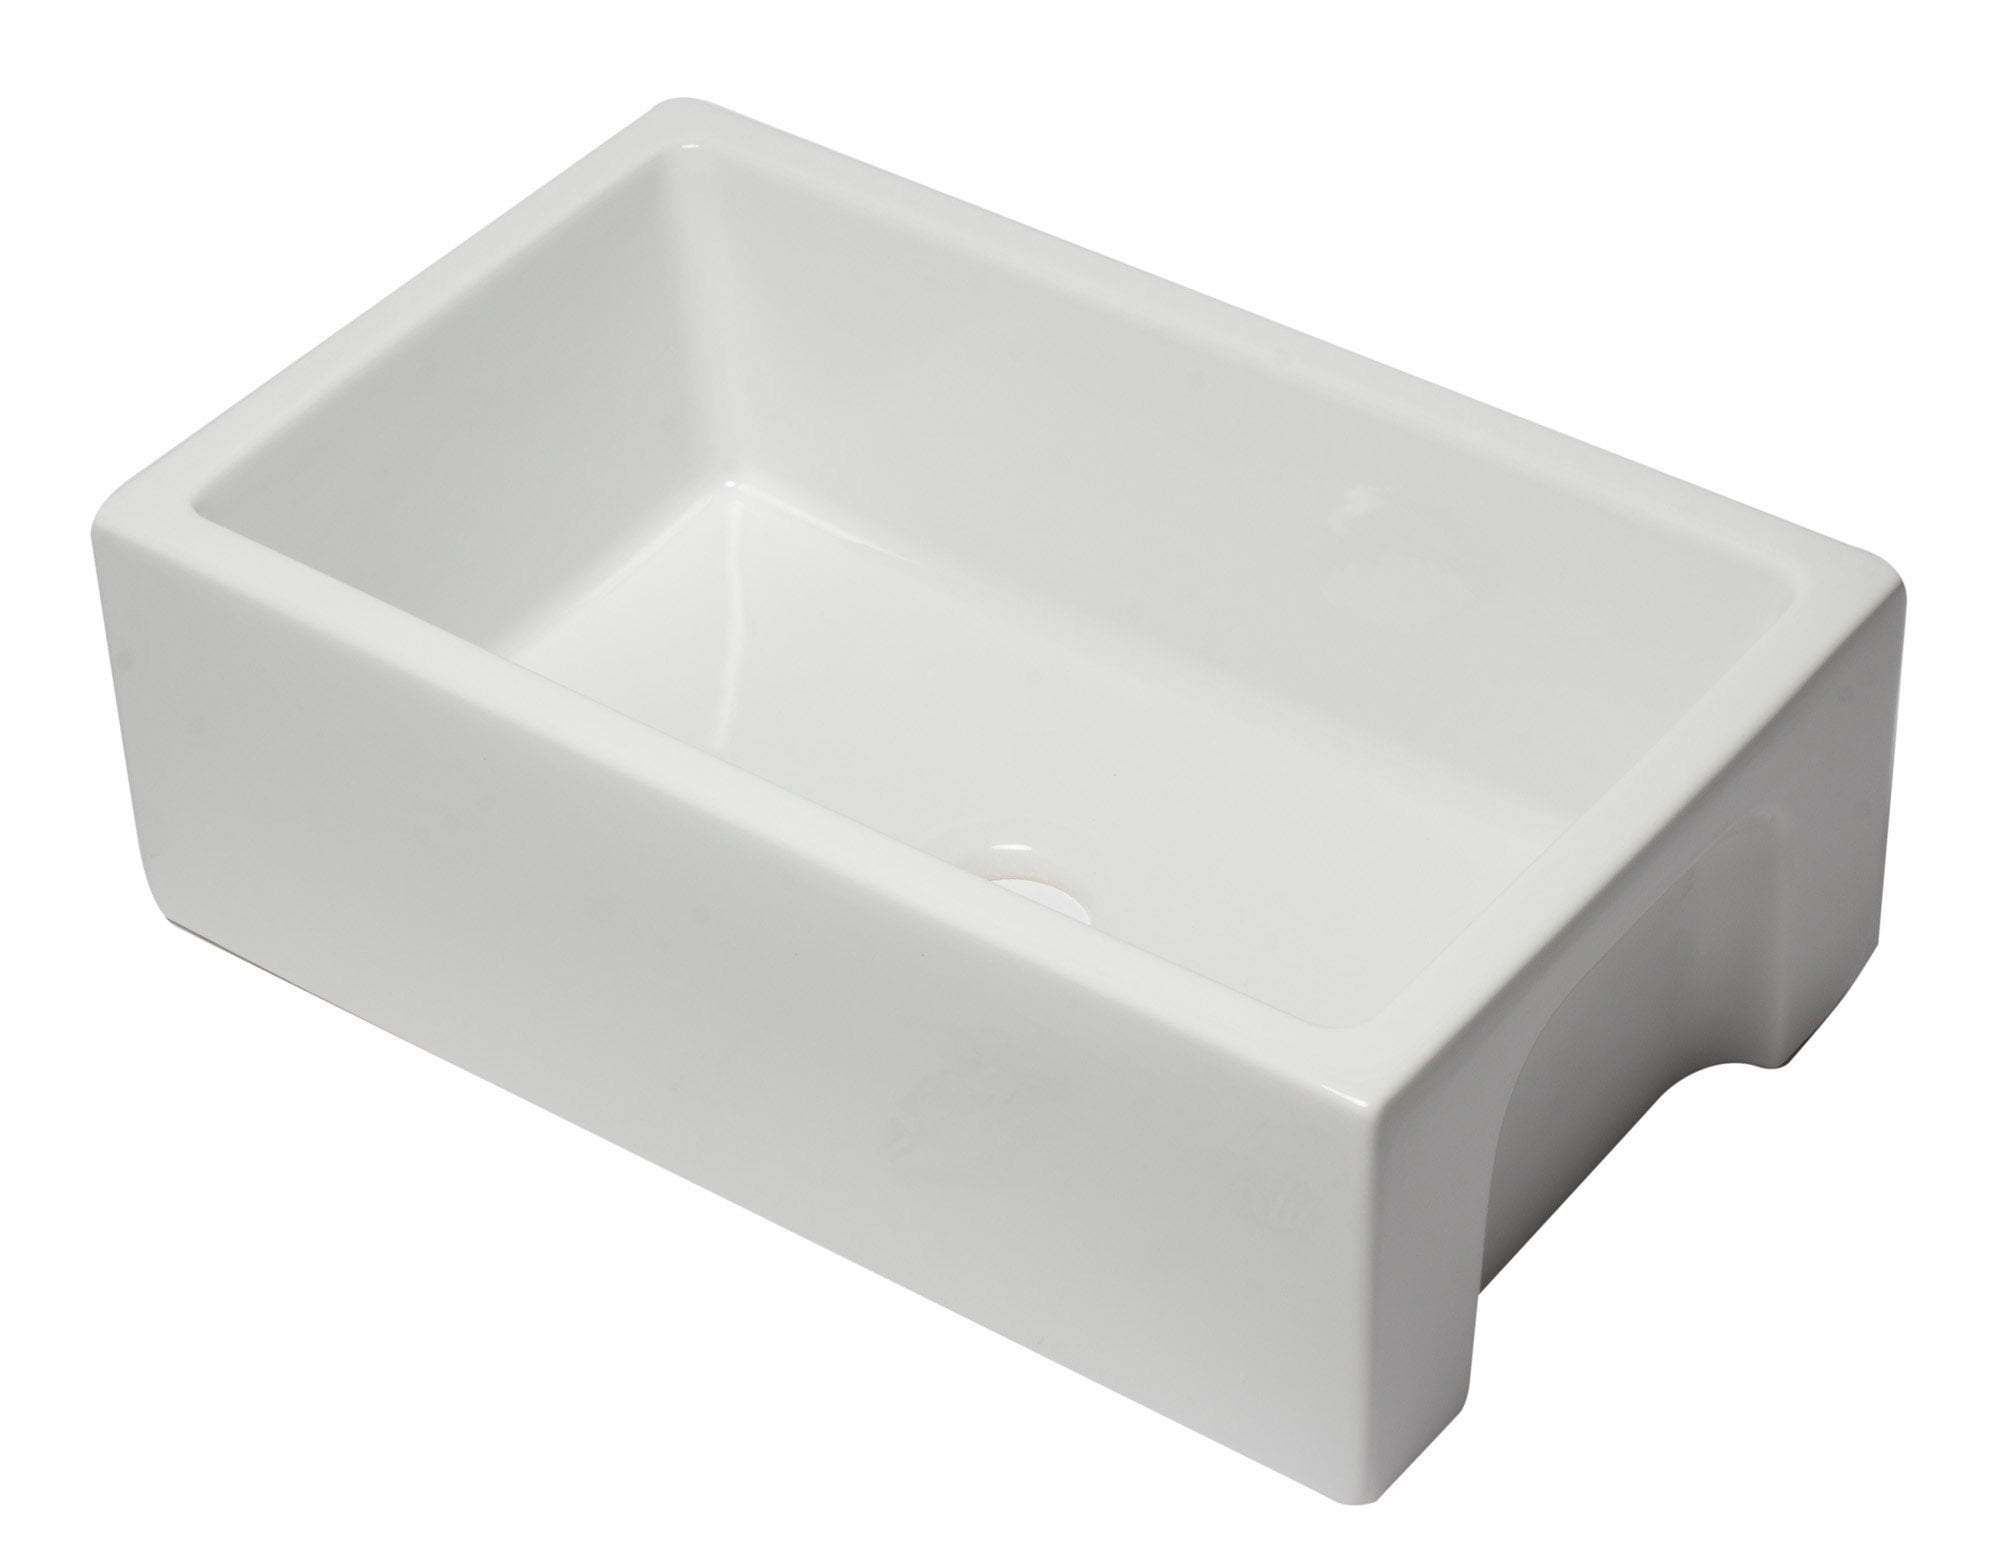 30 inch White Reversible Smooth / Fluted Single Bowl Fireclay Farm Sink